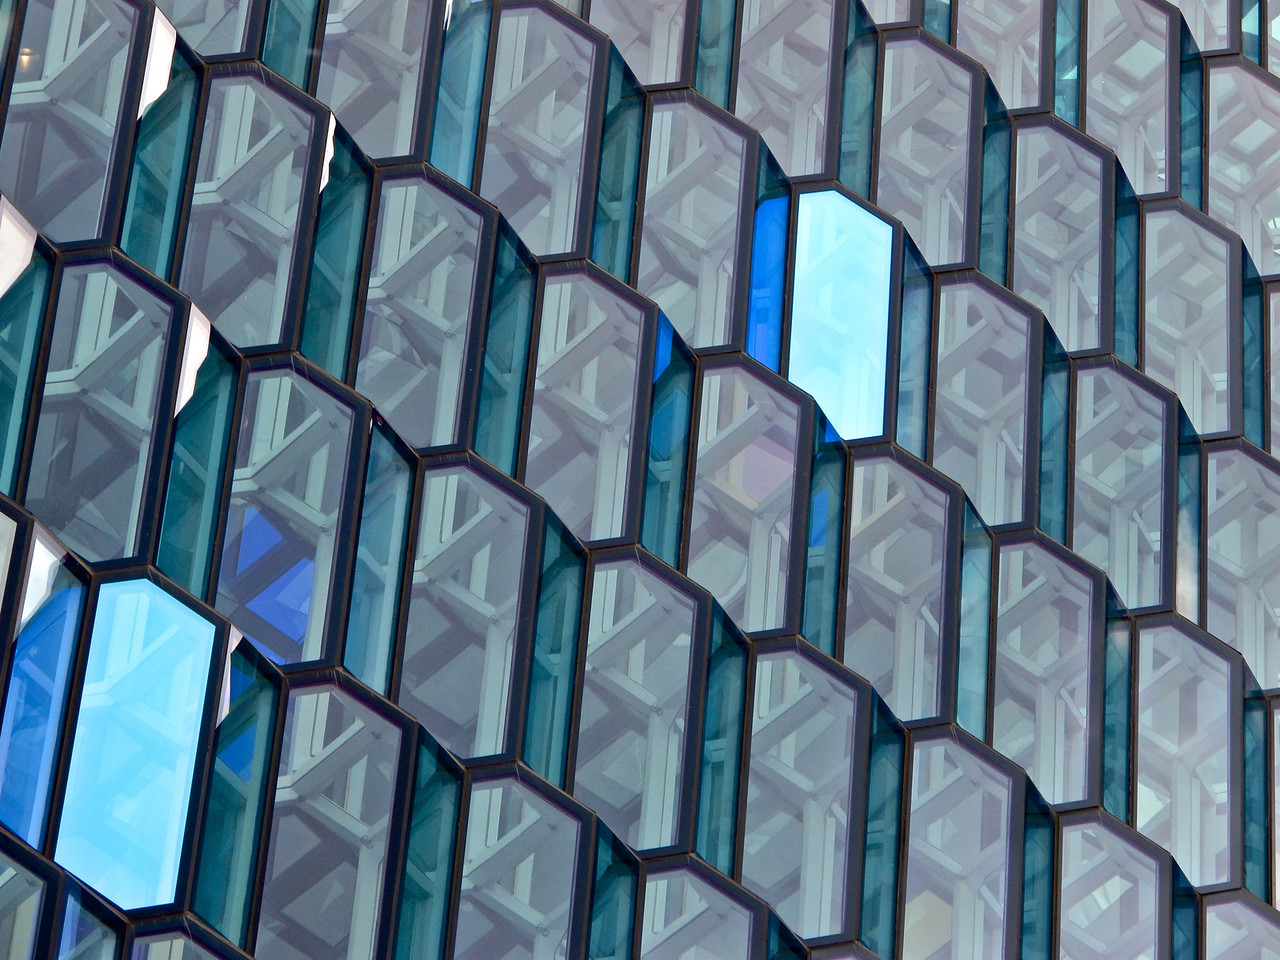 The structure consists of a steel framework clad with geometric shaped glass panels of different colours. The building was originally part of a redevelopment of the Austurhöfn area dubbed World Trade Center Reykjavík, which was partially abandoned when the financial crisis took hold. The development was intended to include a 400-room hotel, luxury apartments, retail units, restaurants, a car park and the new headquarters of Icelandic bank Landsbanki.  Today, it is just a concert hall with restaurants on the main level.